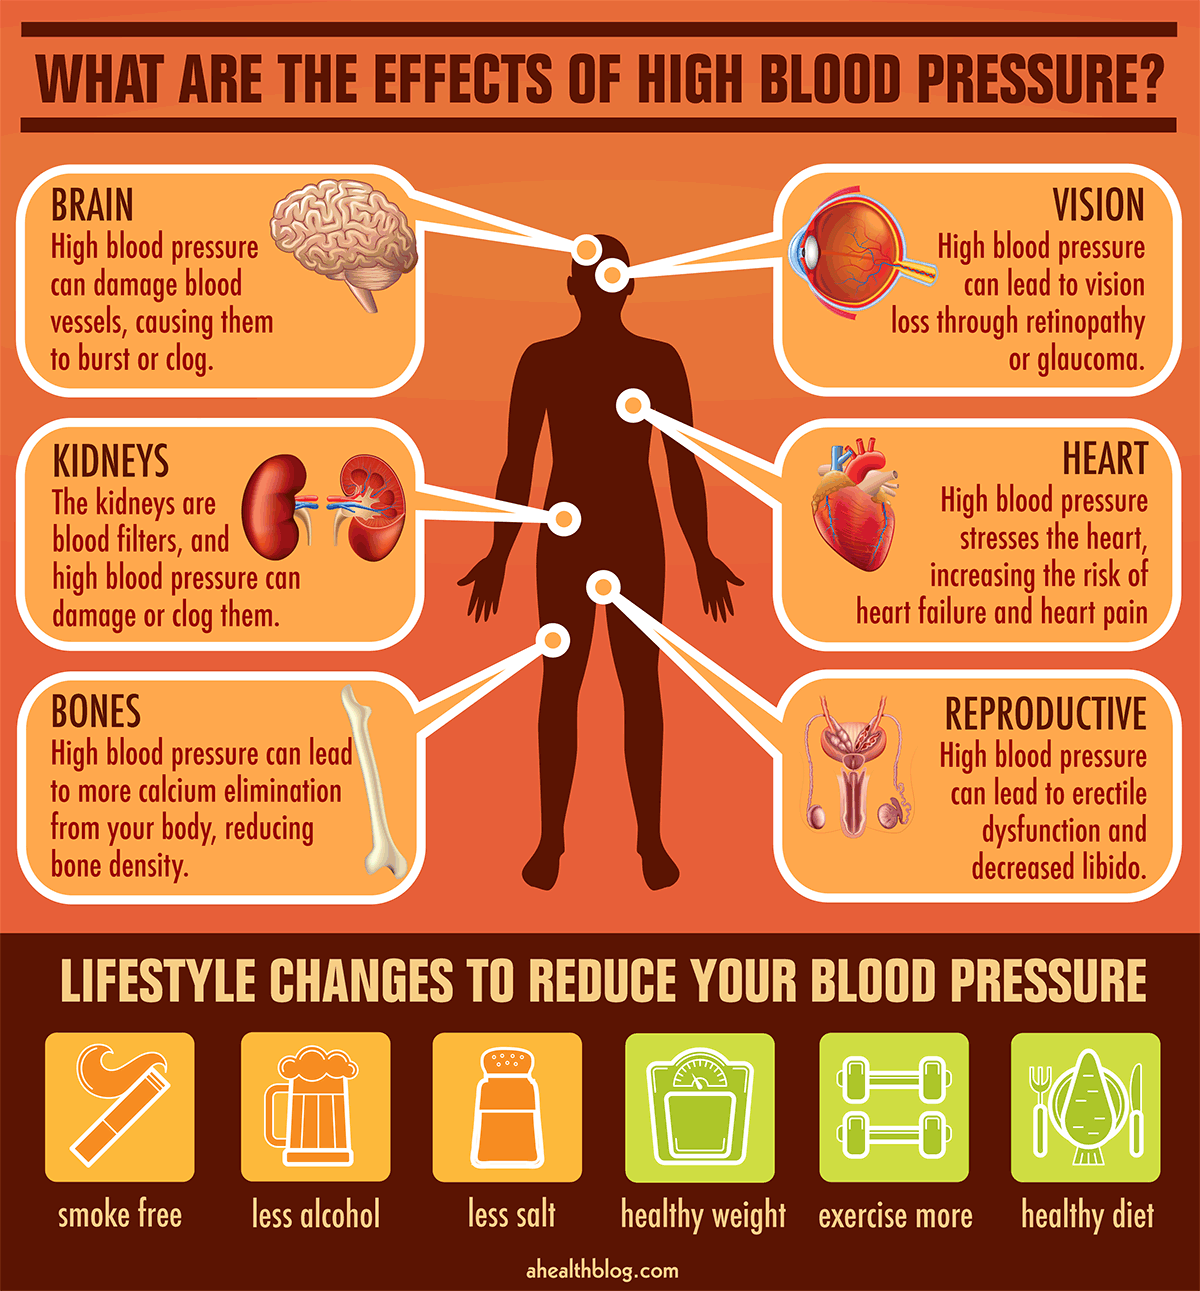 What Are The Effects Of High Blood Pressure